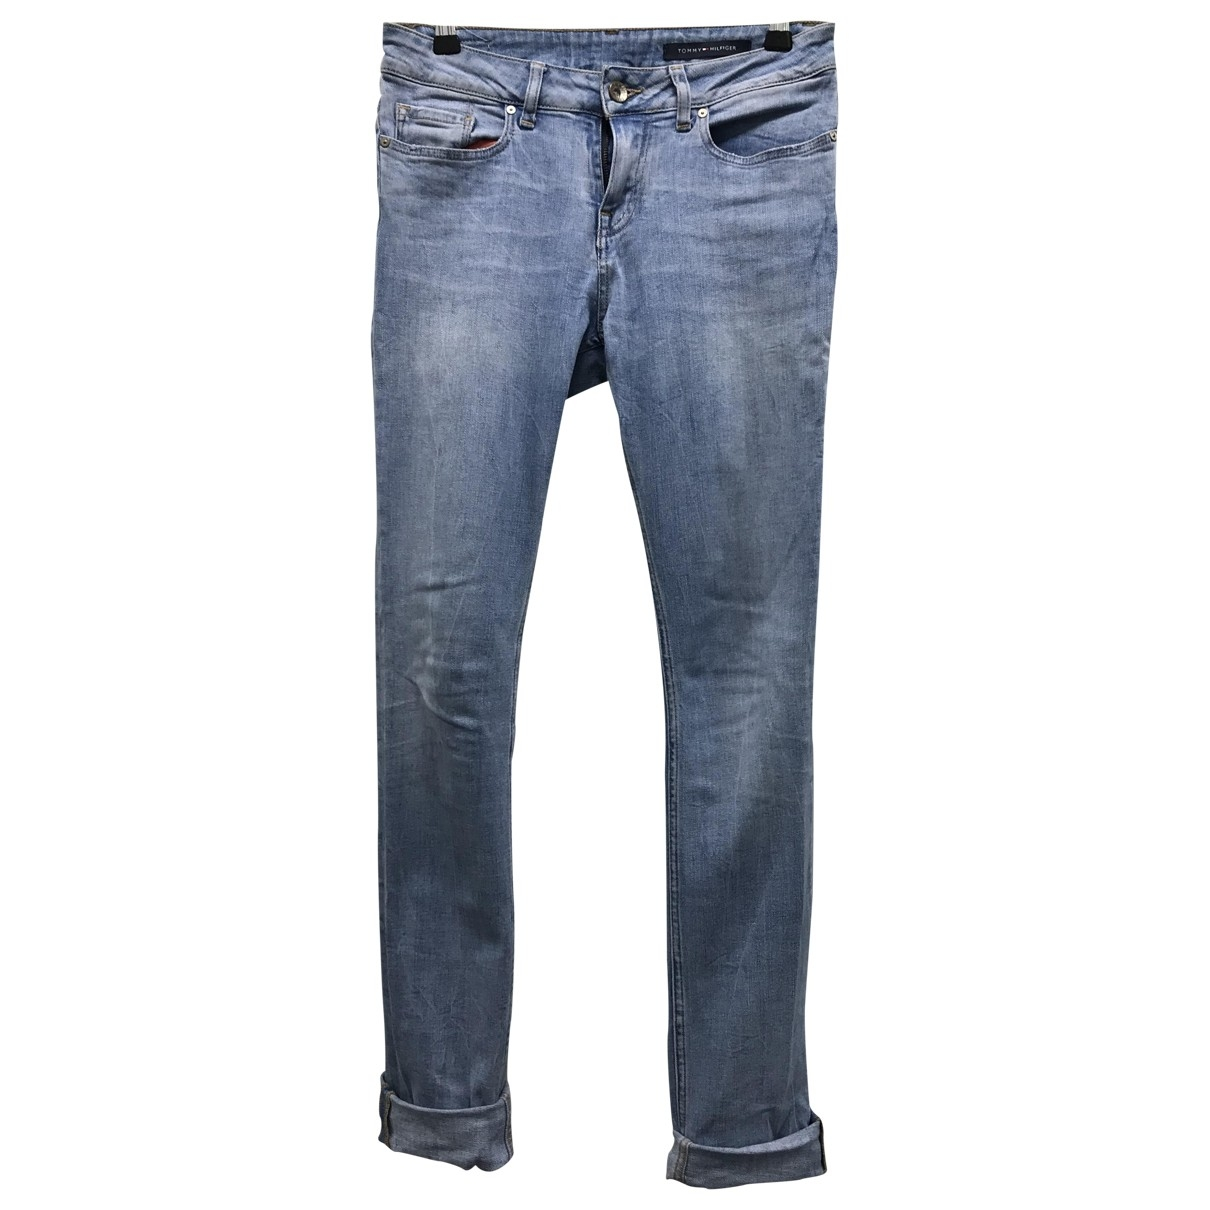 Tommy Hilfiger \N Blue Cotton - elasthane Jeans for Women 28 US